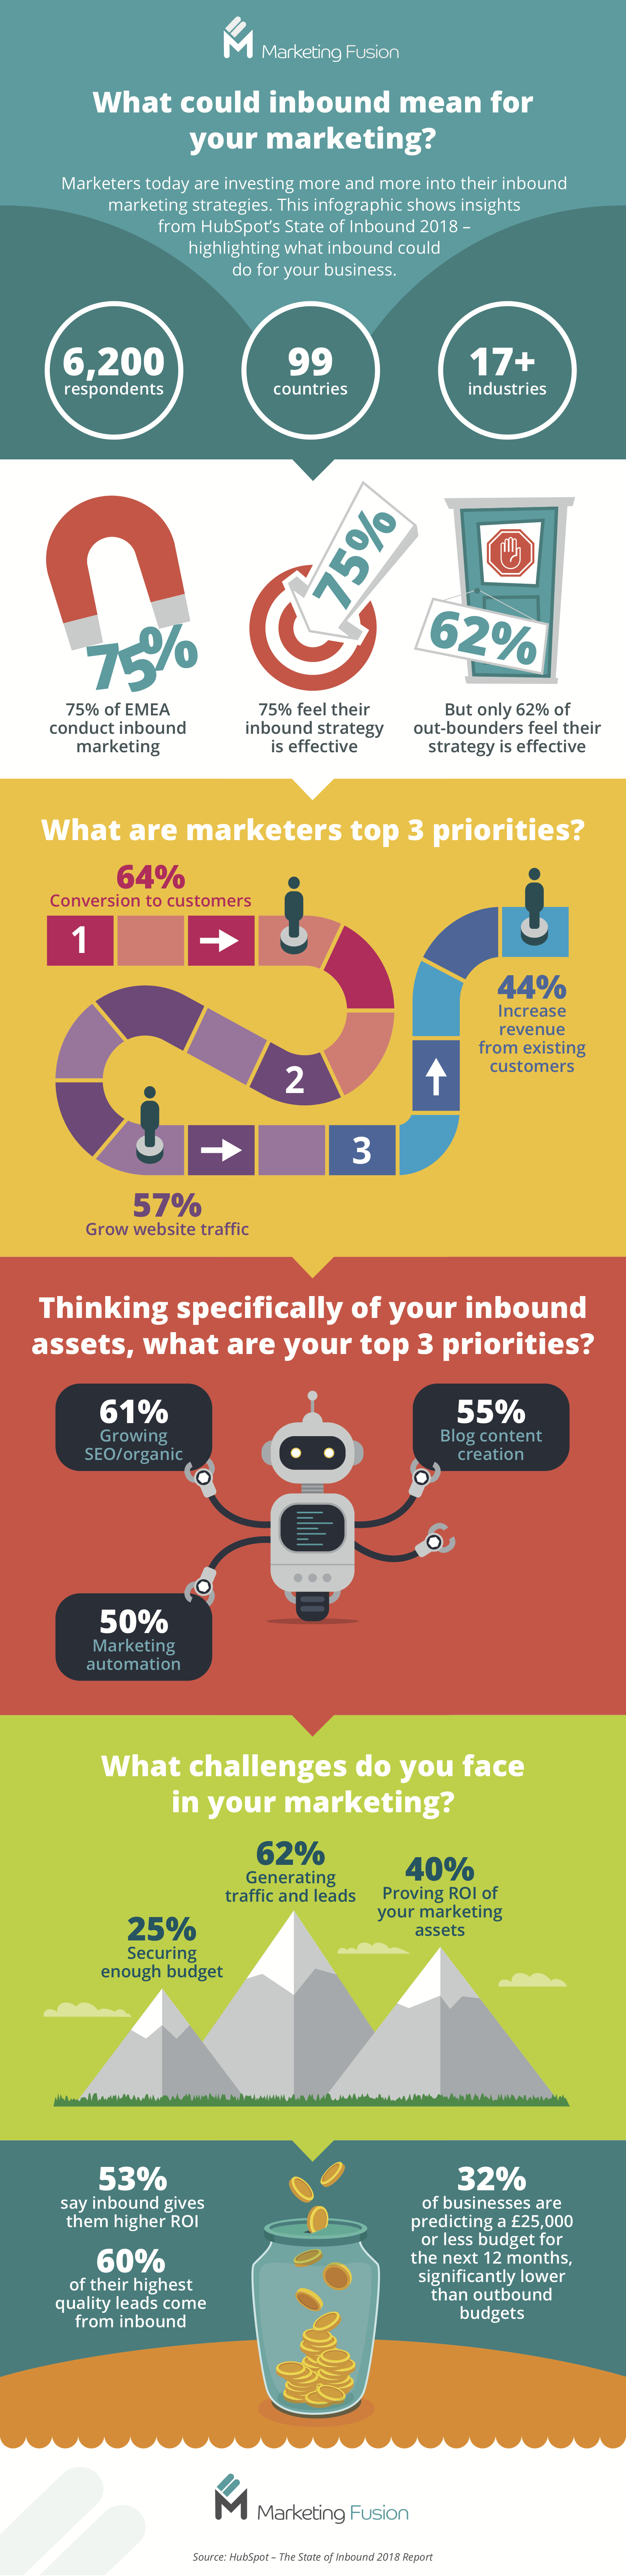 MF Inbound Marketing Infographic